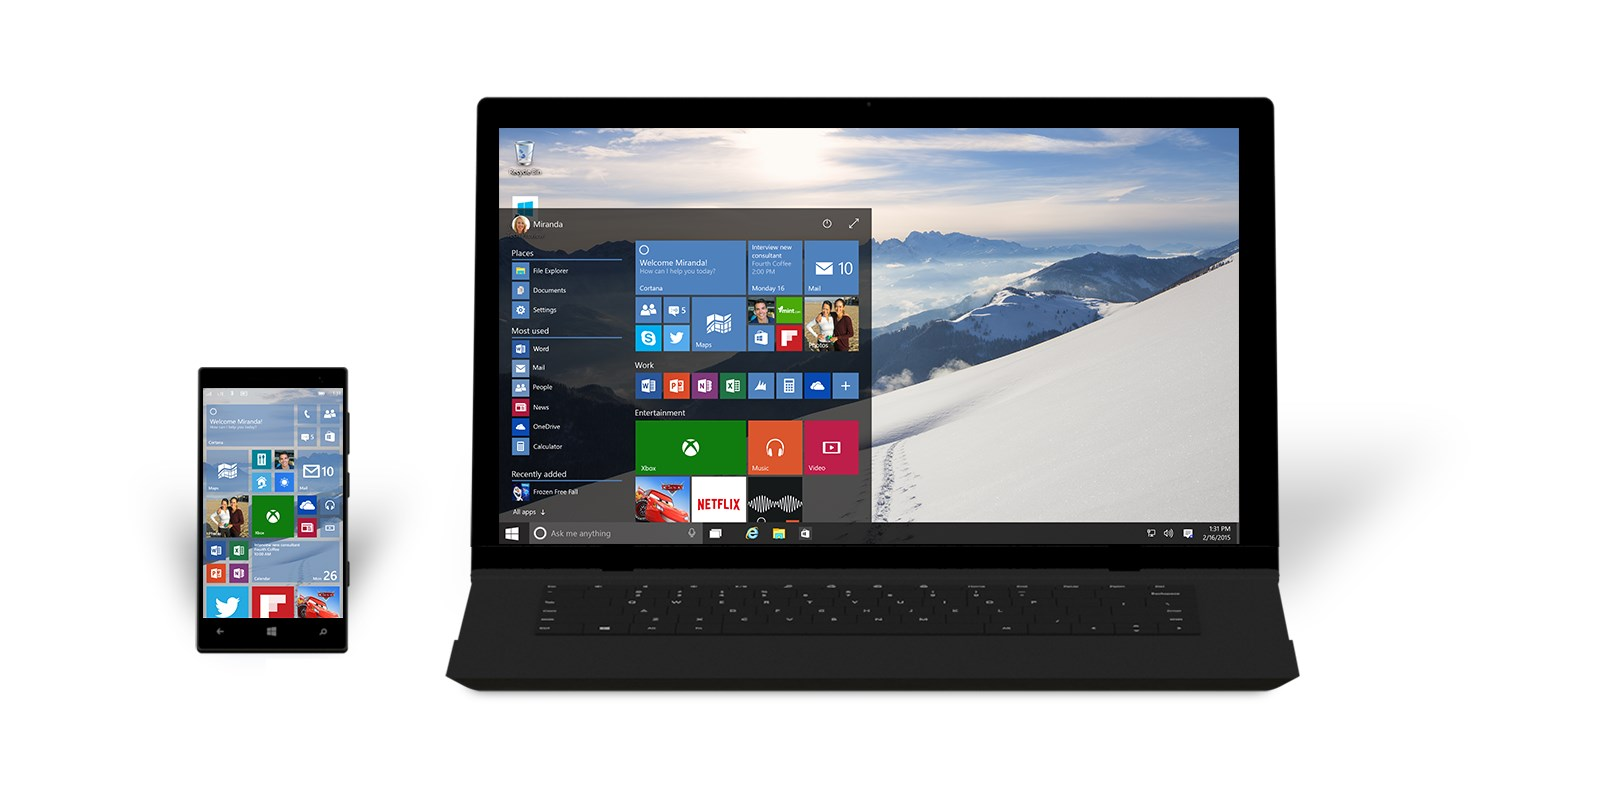 3 mistakes Microsoft should avoid when launching Windows 10